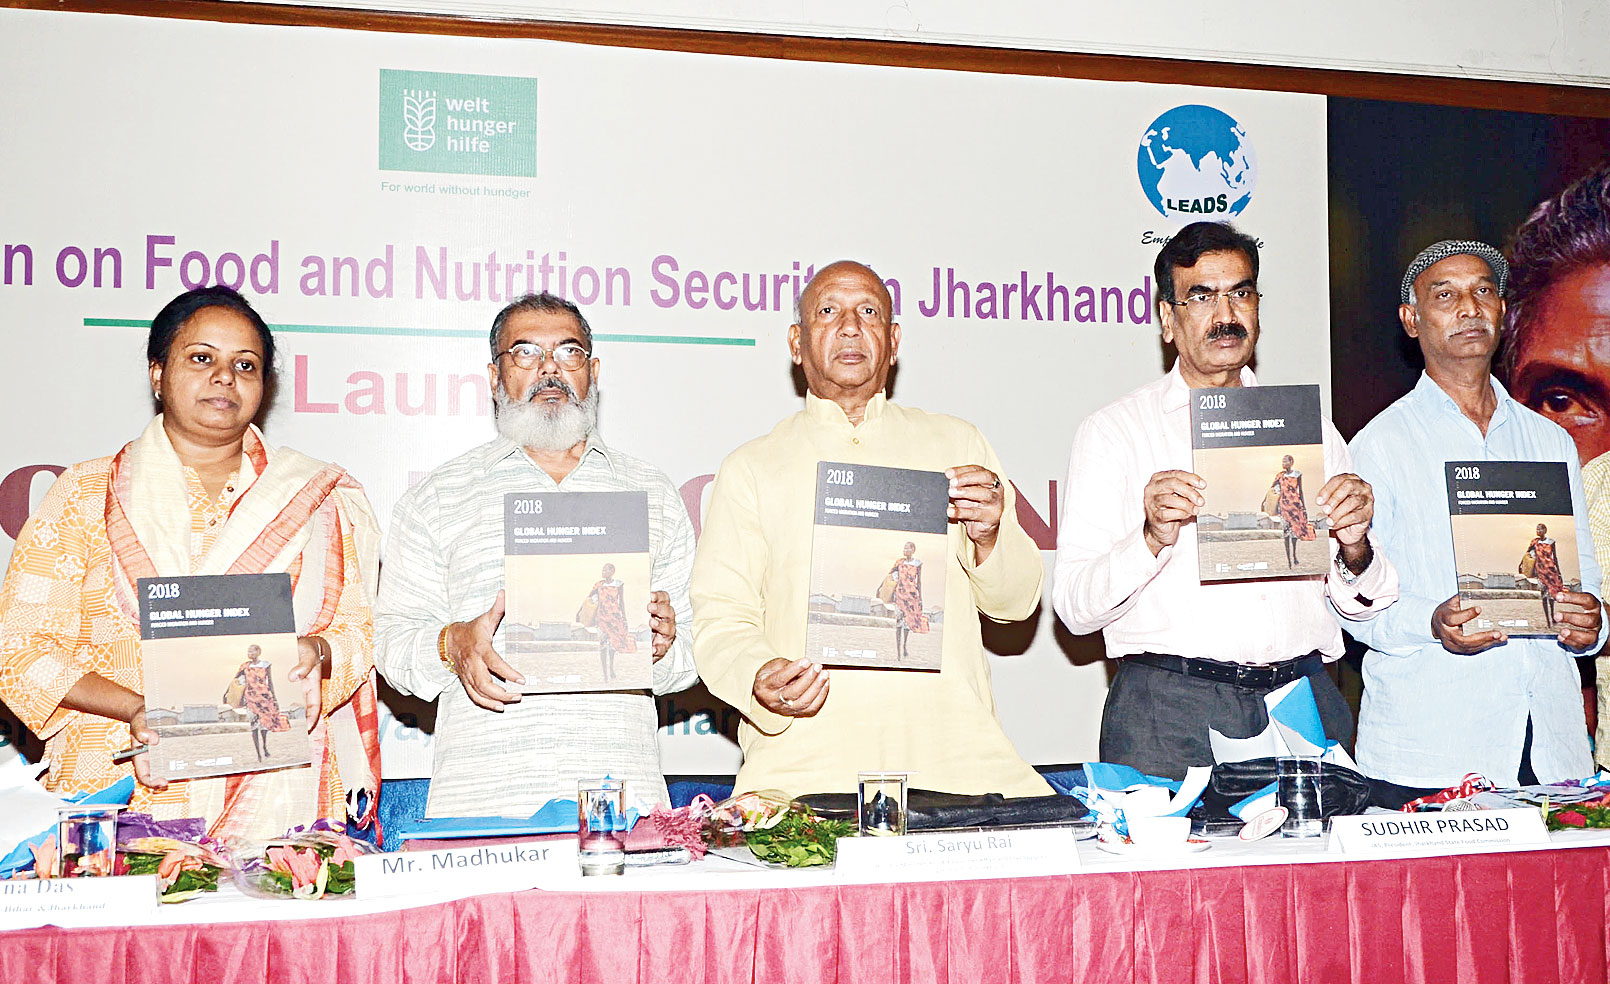 Jharkhand famished, says report